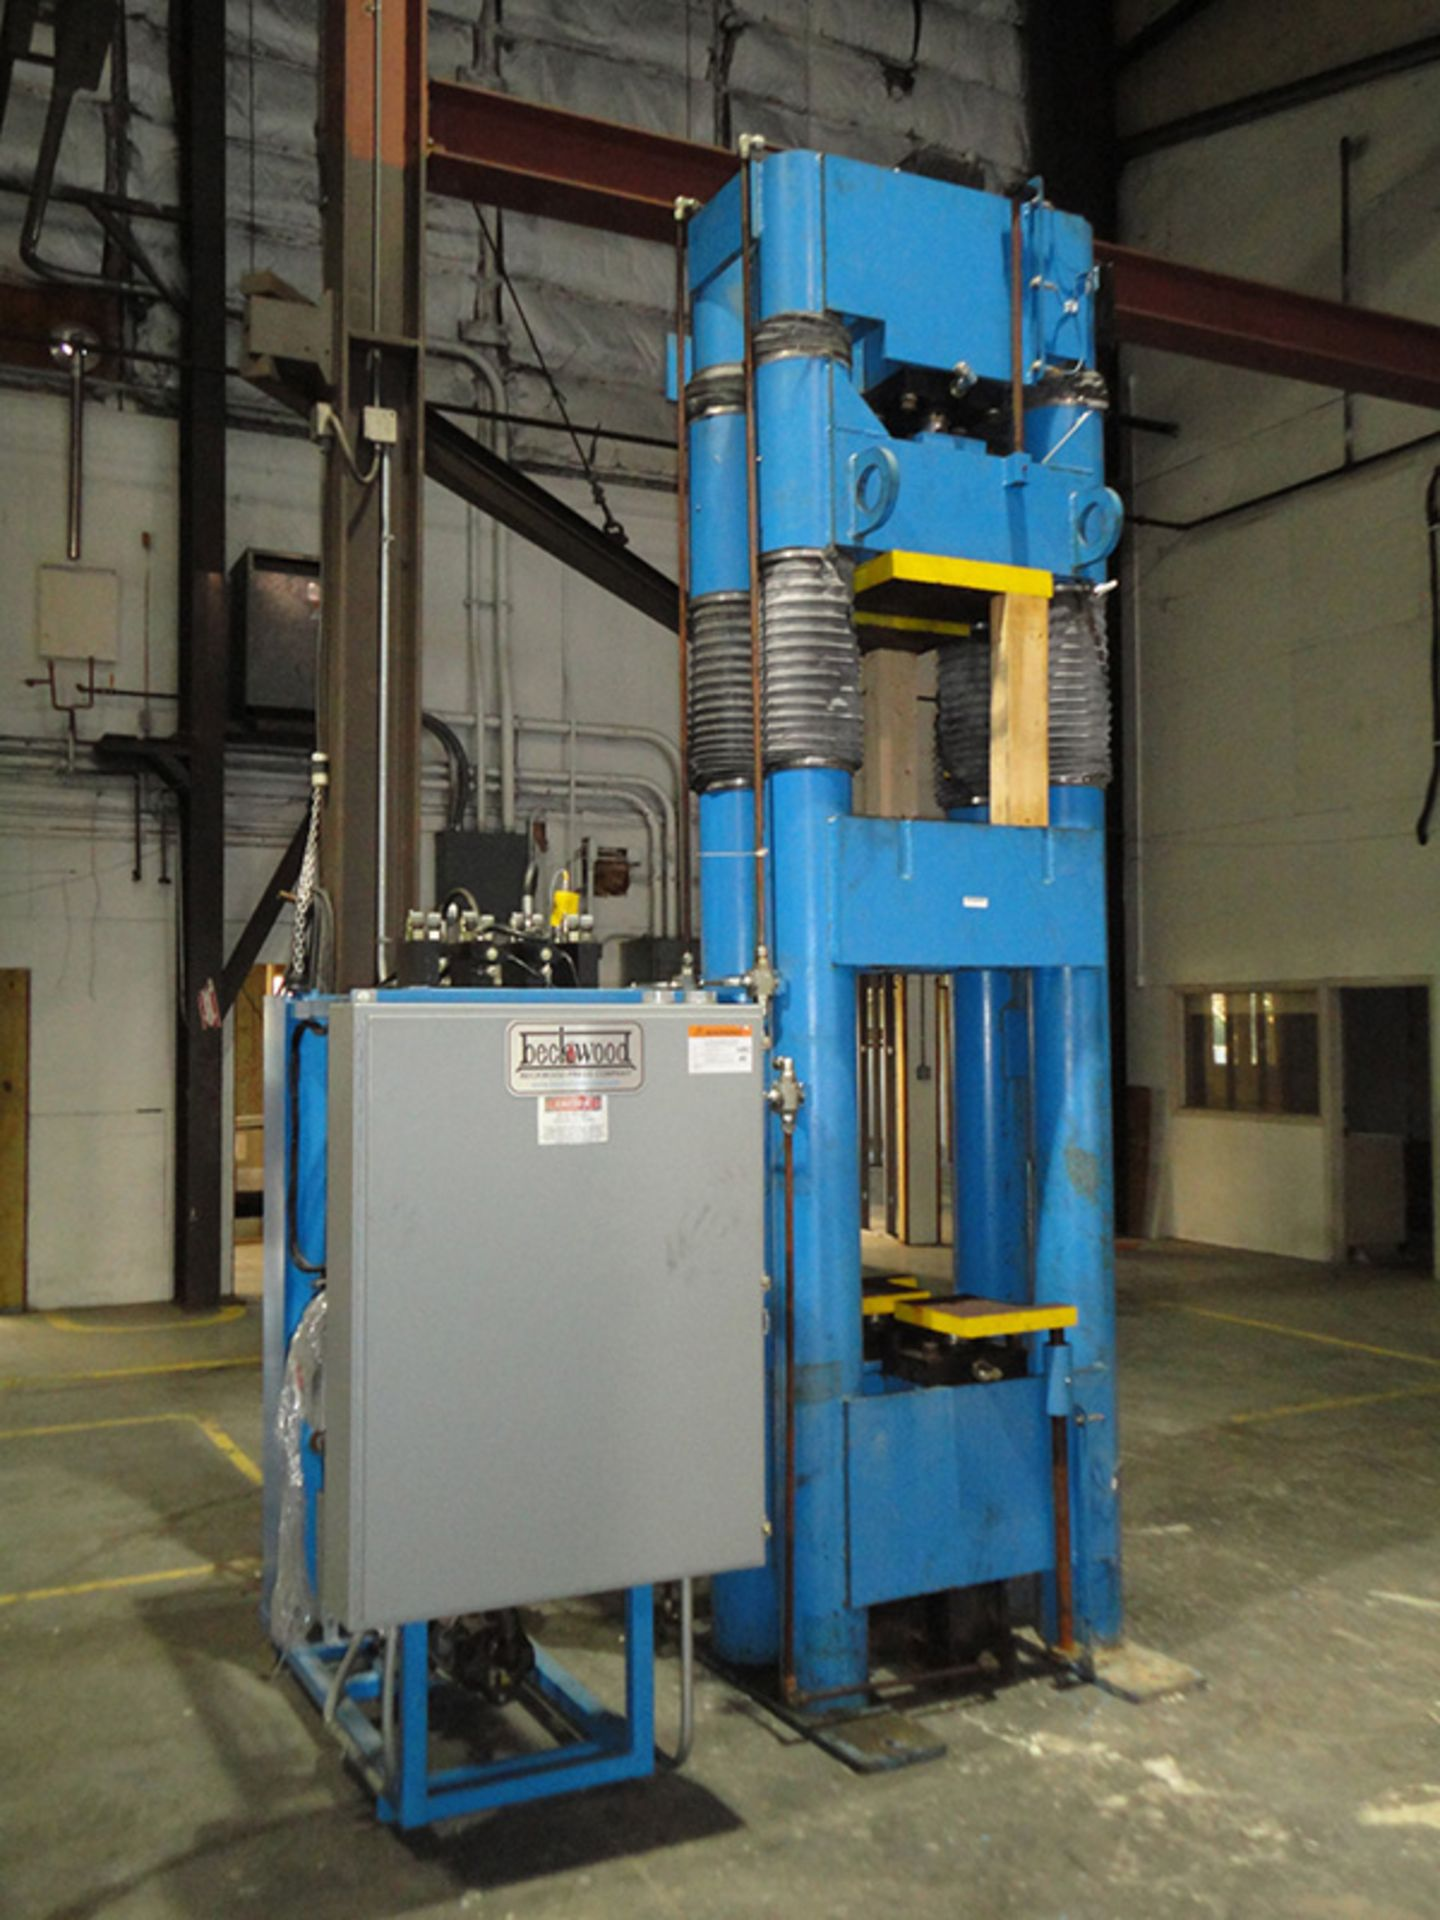 "Lot 25 - 2002 Beckwood Four Post Hydraulic Powder Compaction Press (Up & Down Acting) | 110-Ton x 12"" x 12"" x"